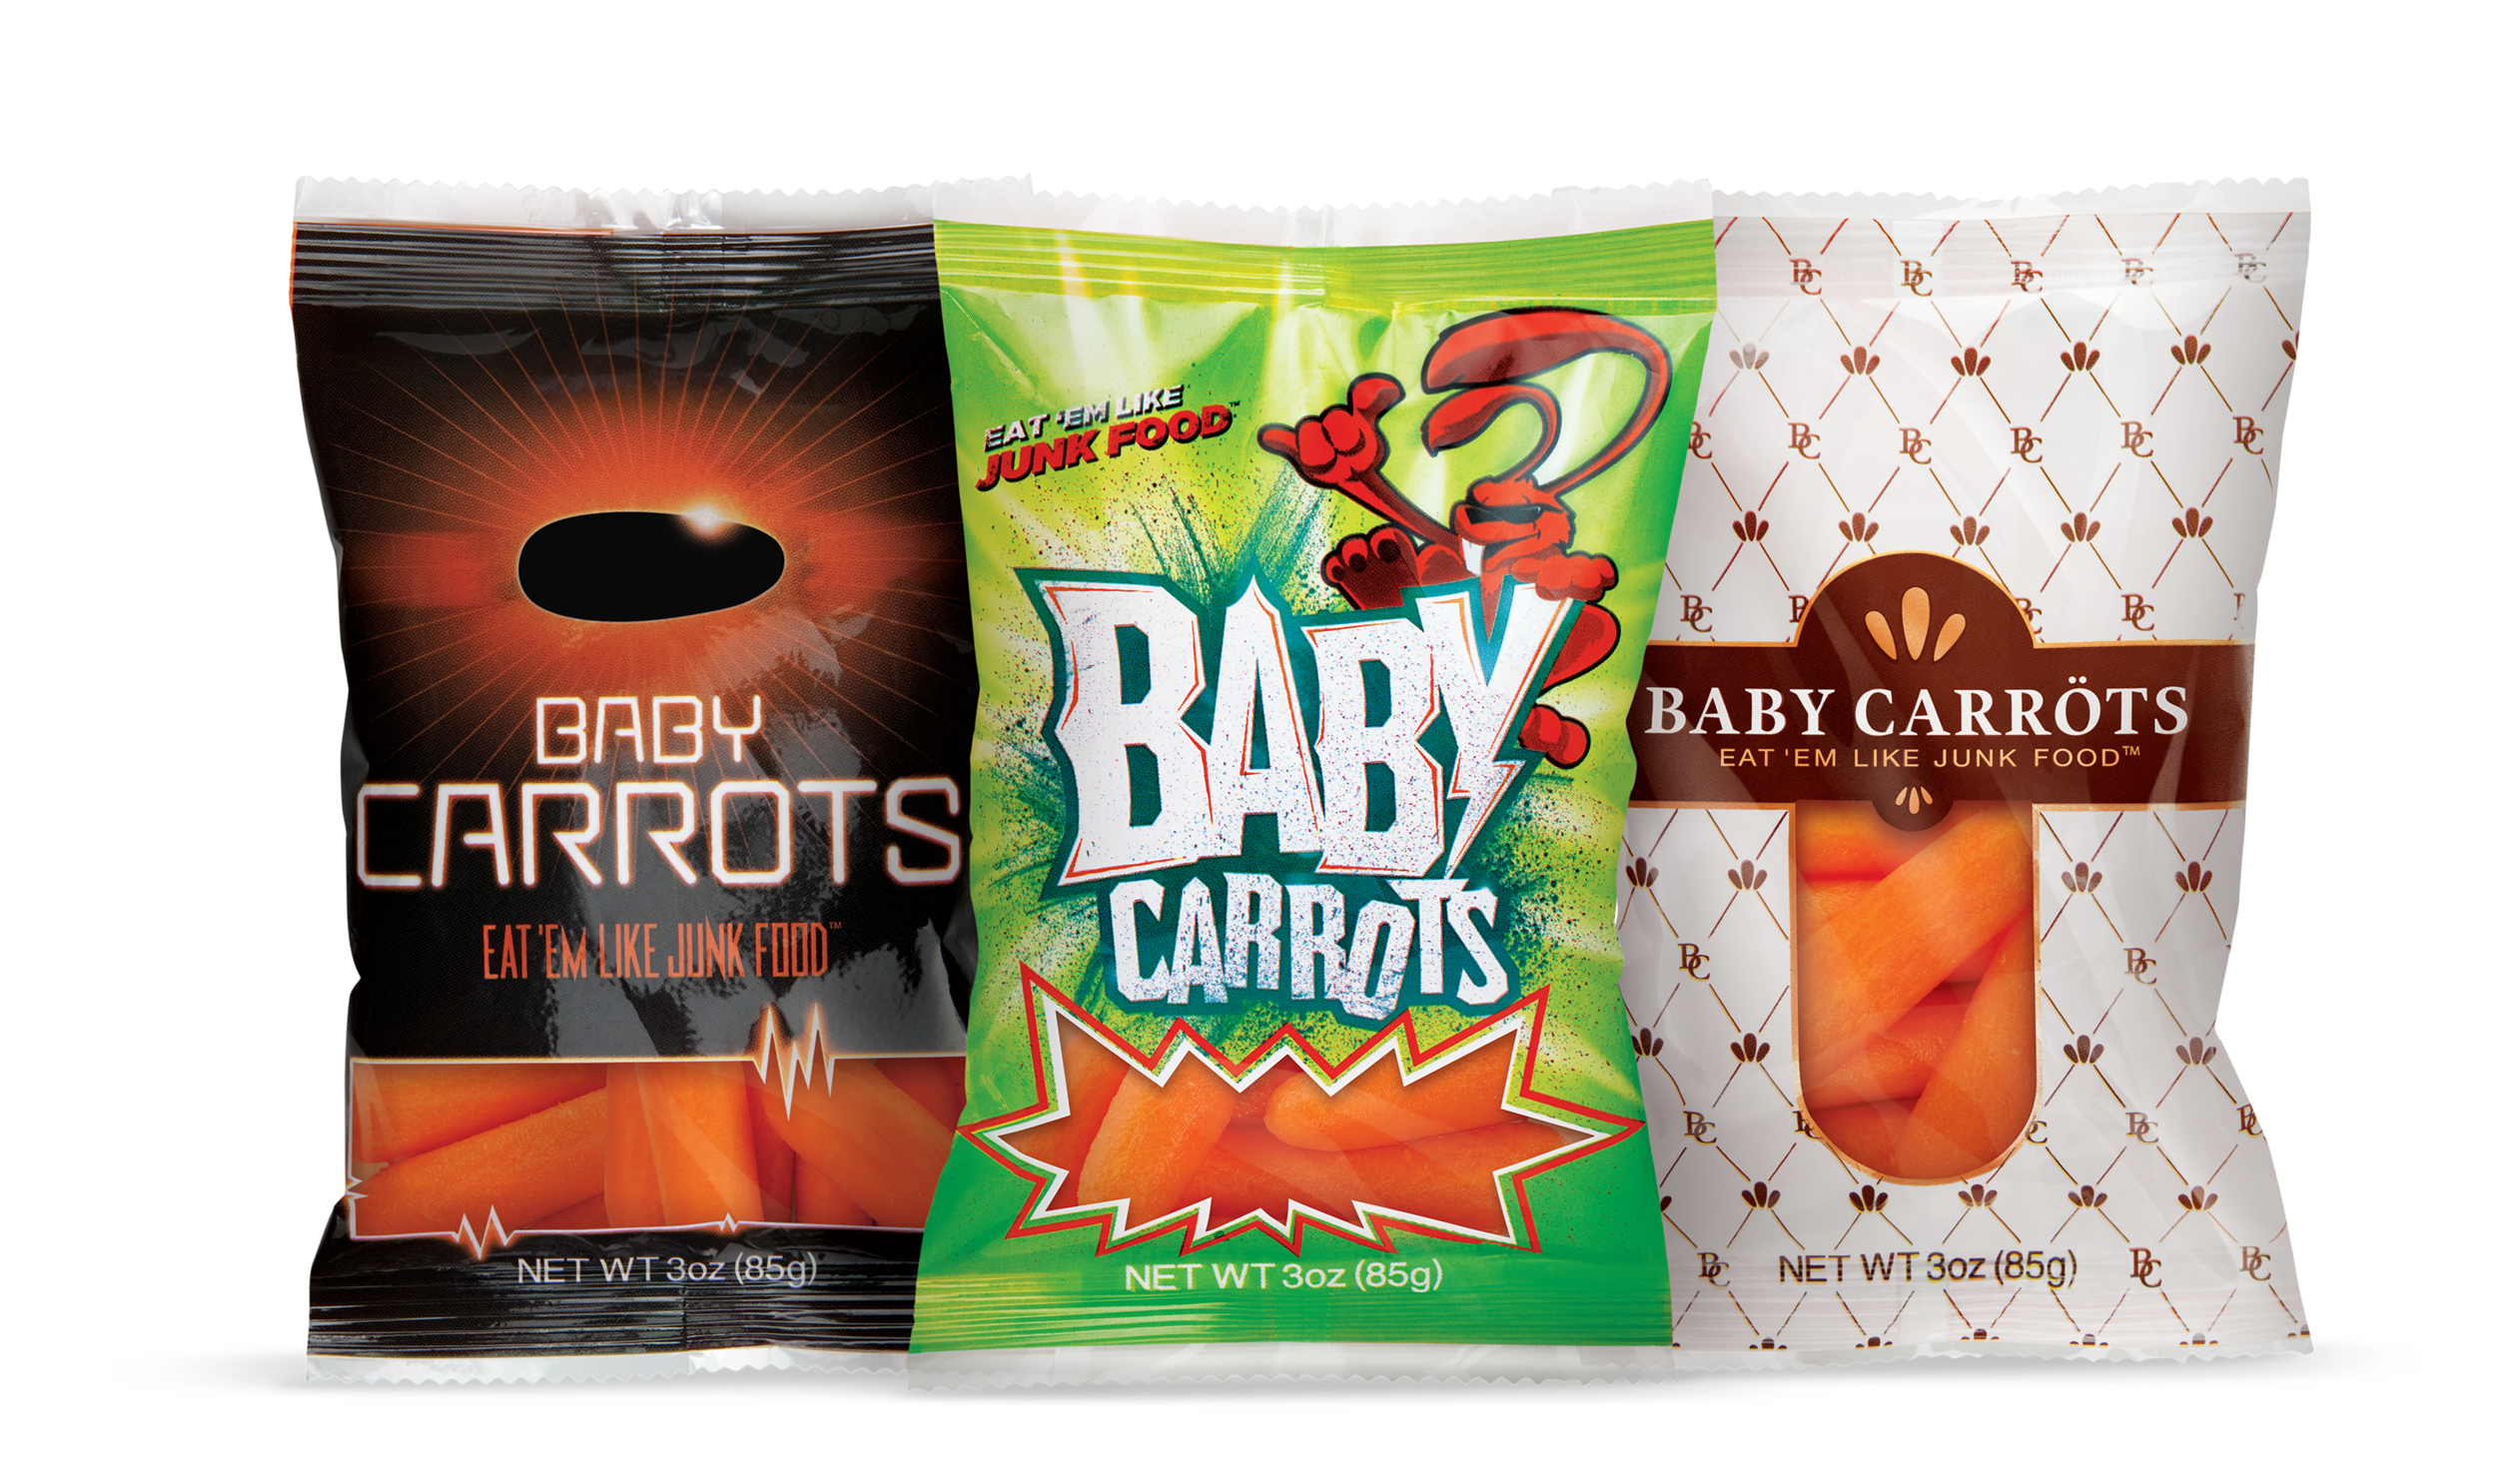 Carrot_ChipBagPackage.png